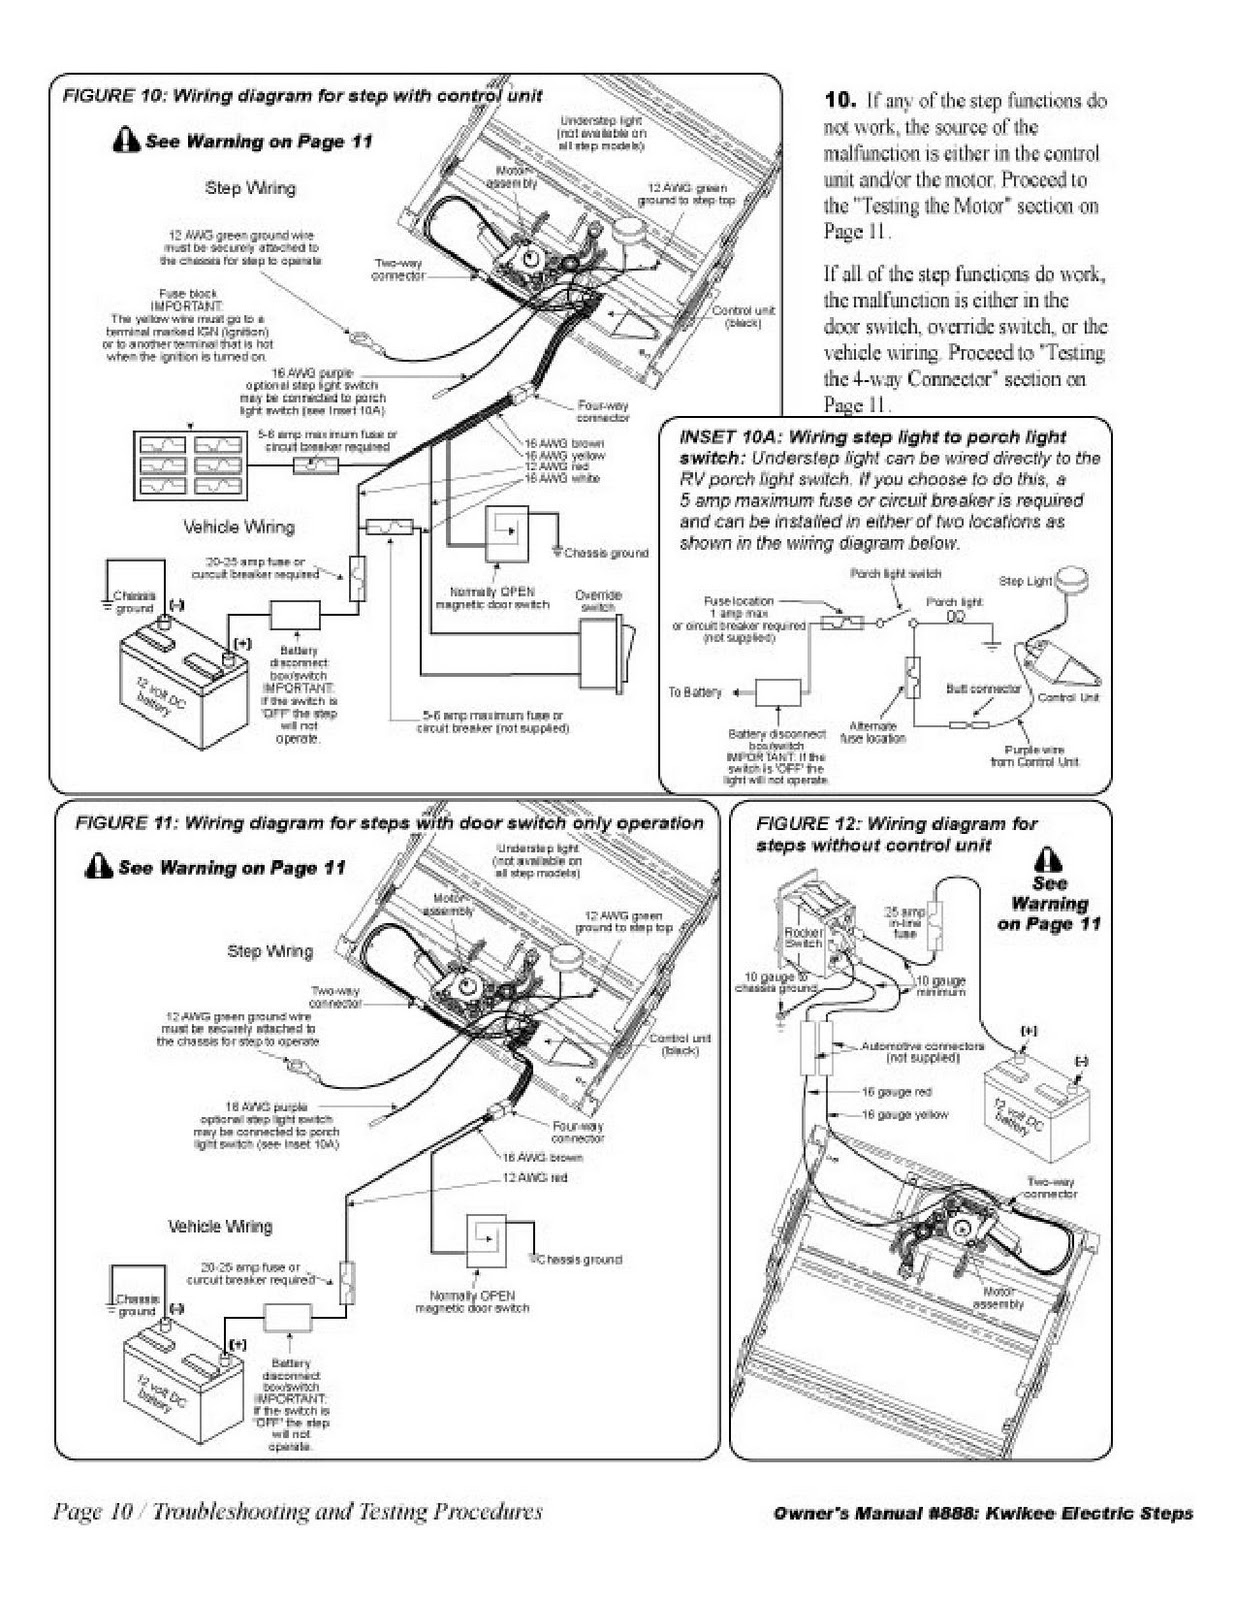 medium resolution of 1983 fleetwood pace arrow owners manuals kwikee electric rv thermostat wiring diagram